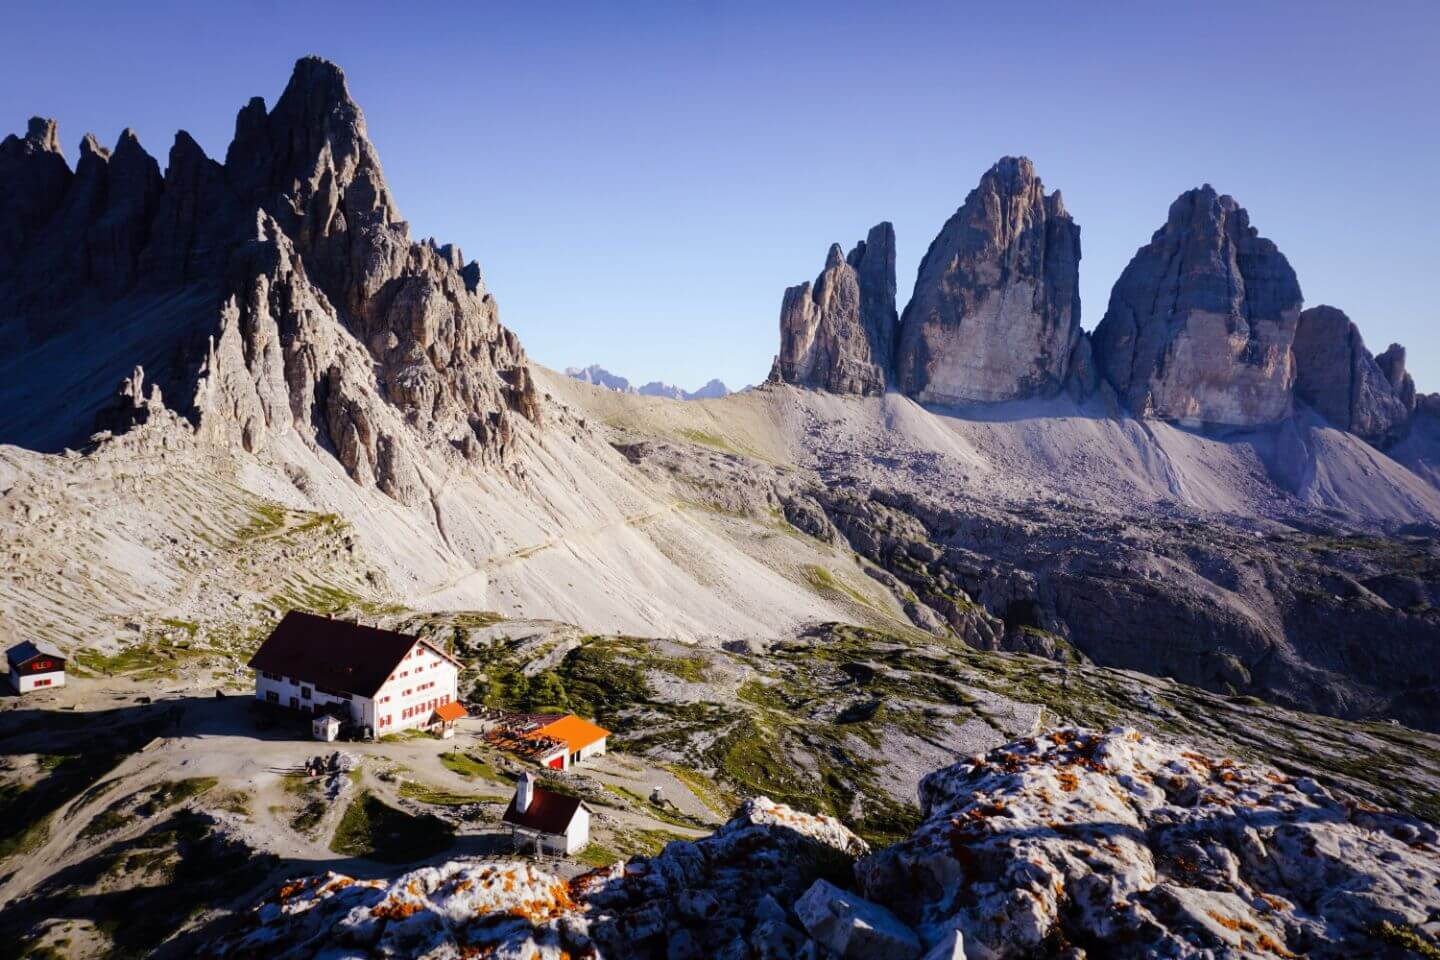 Best Day Hikes in the Dolomites - Tre Cime di Lavaredo Loop